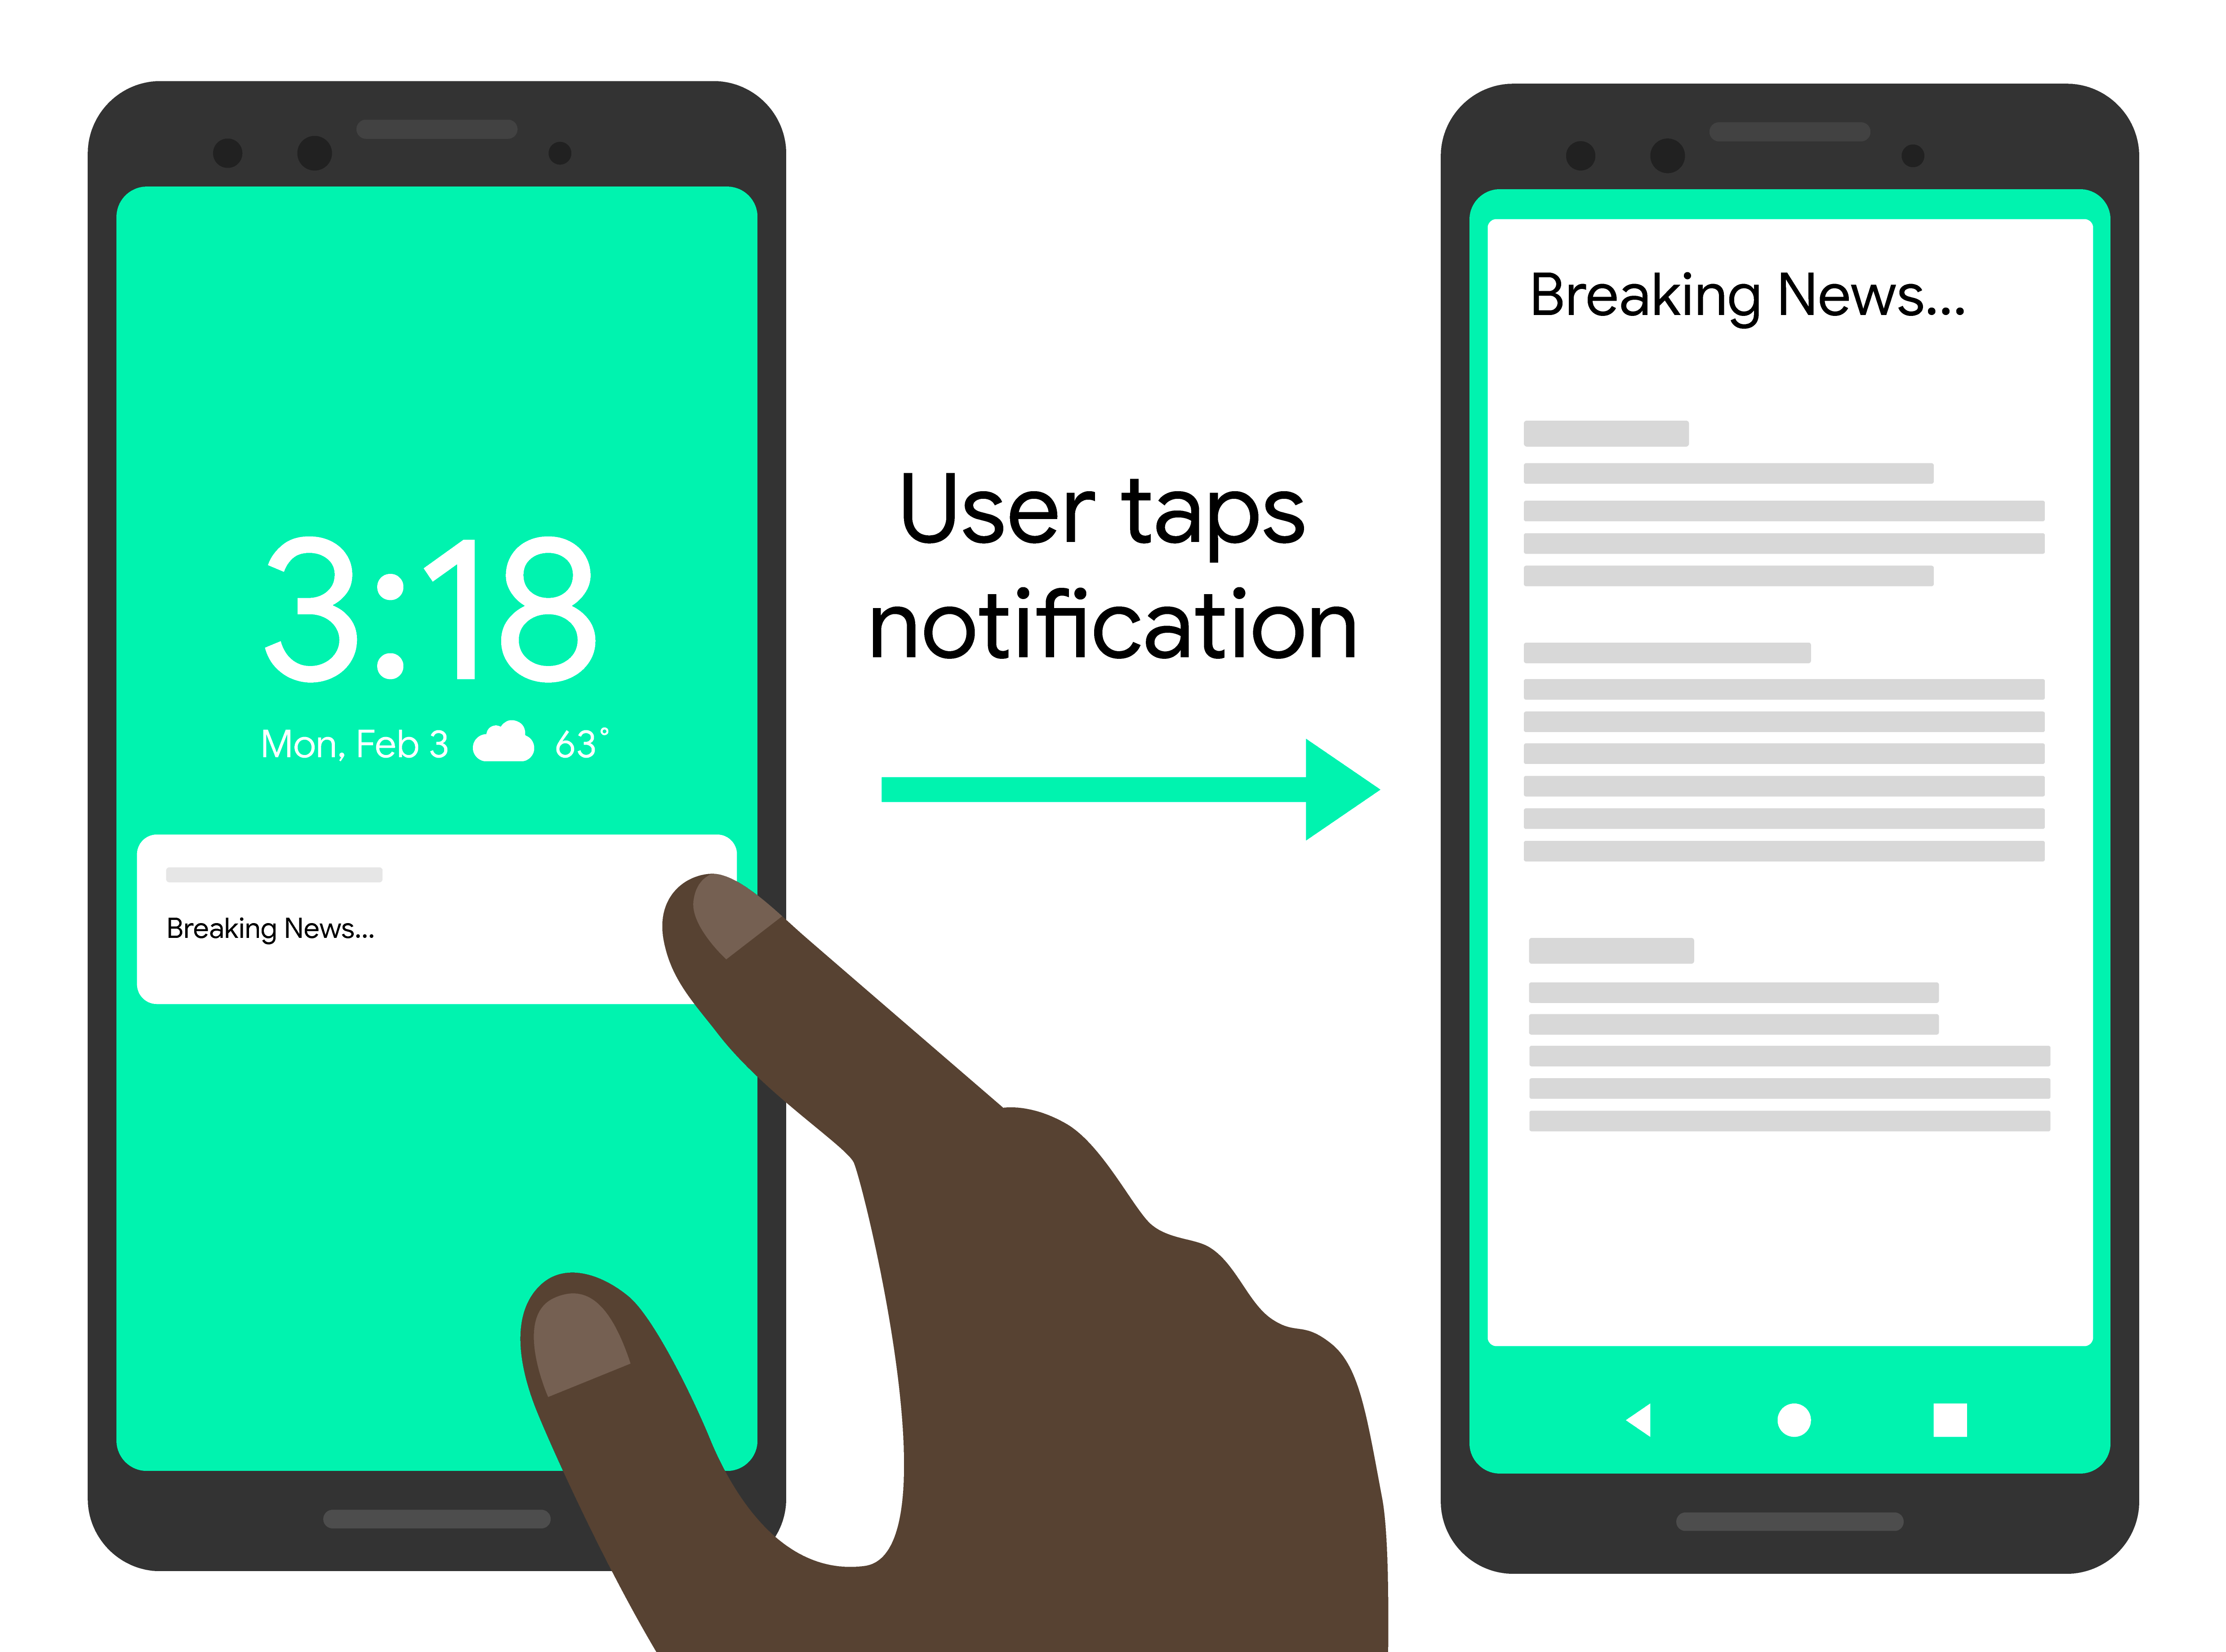 Simple drawing of a user tap opening a web page